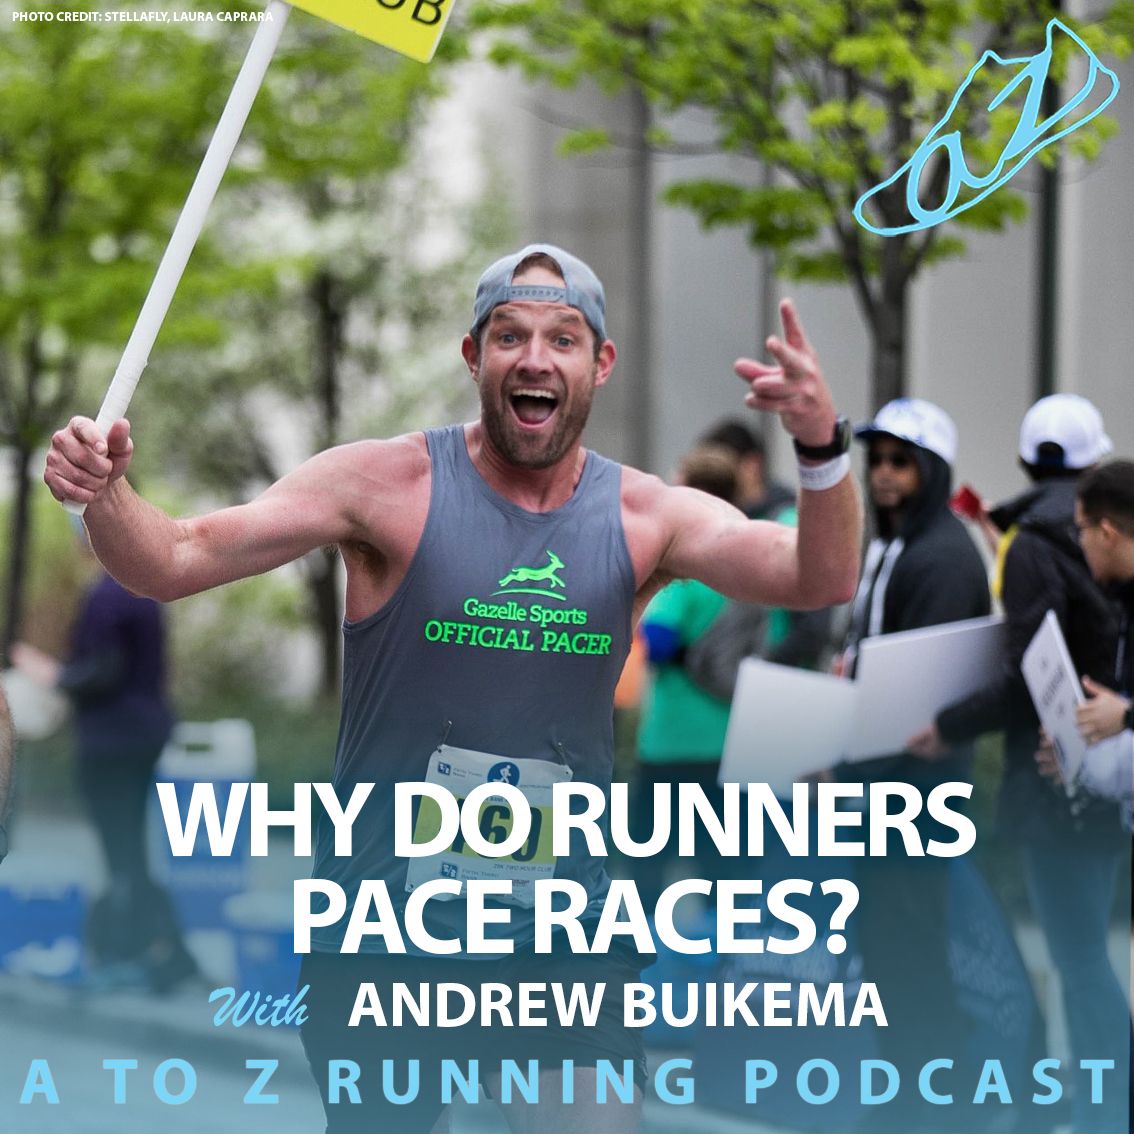 Why do runners pace races